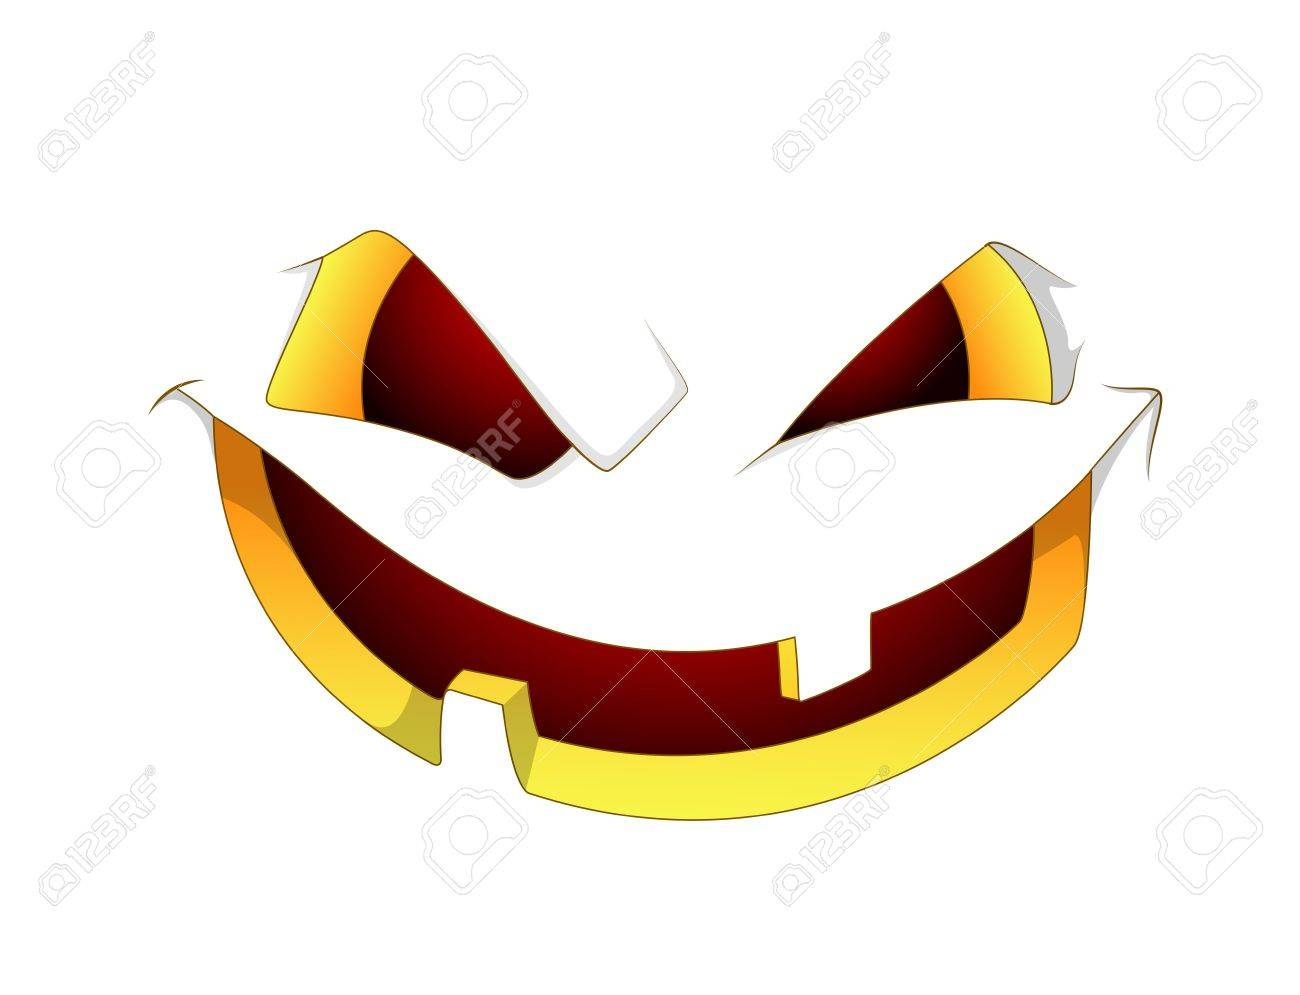 Scary Halloween Pumpkin Face Royalty Free Cliparts, Vectors, And ...